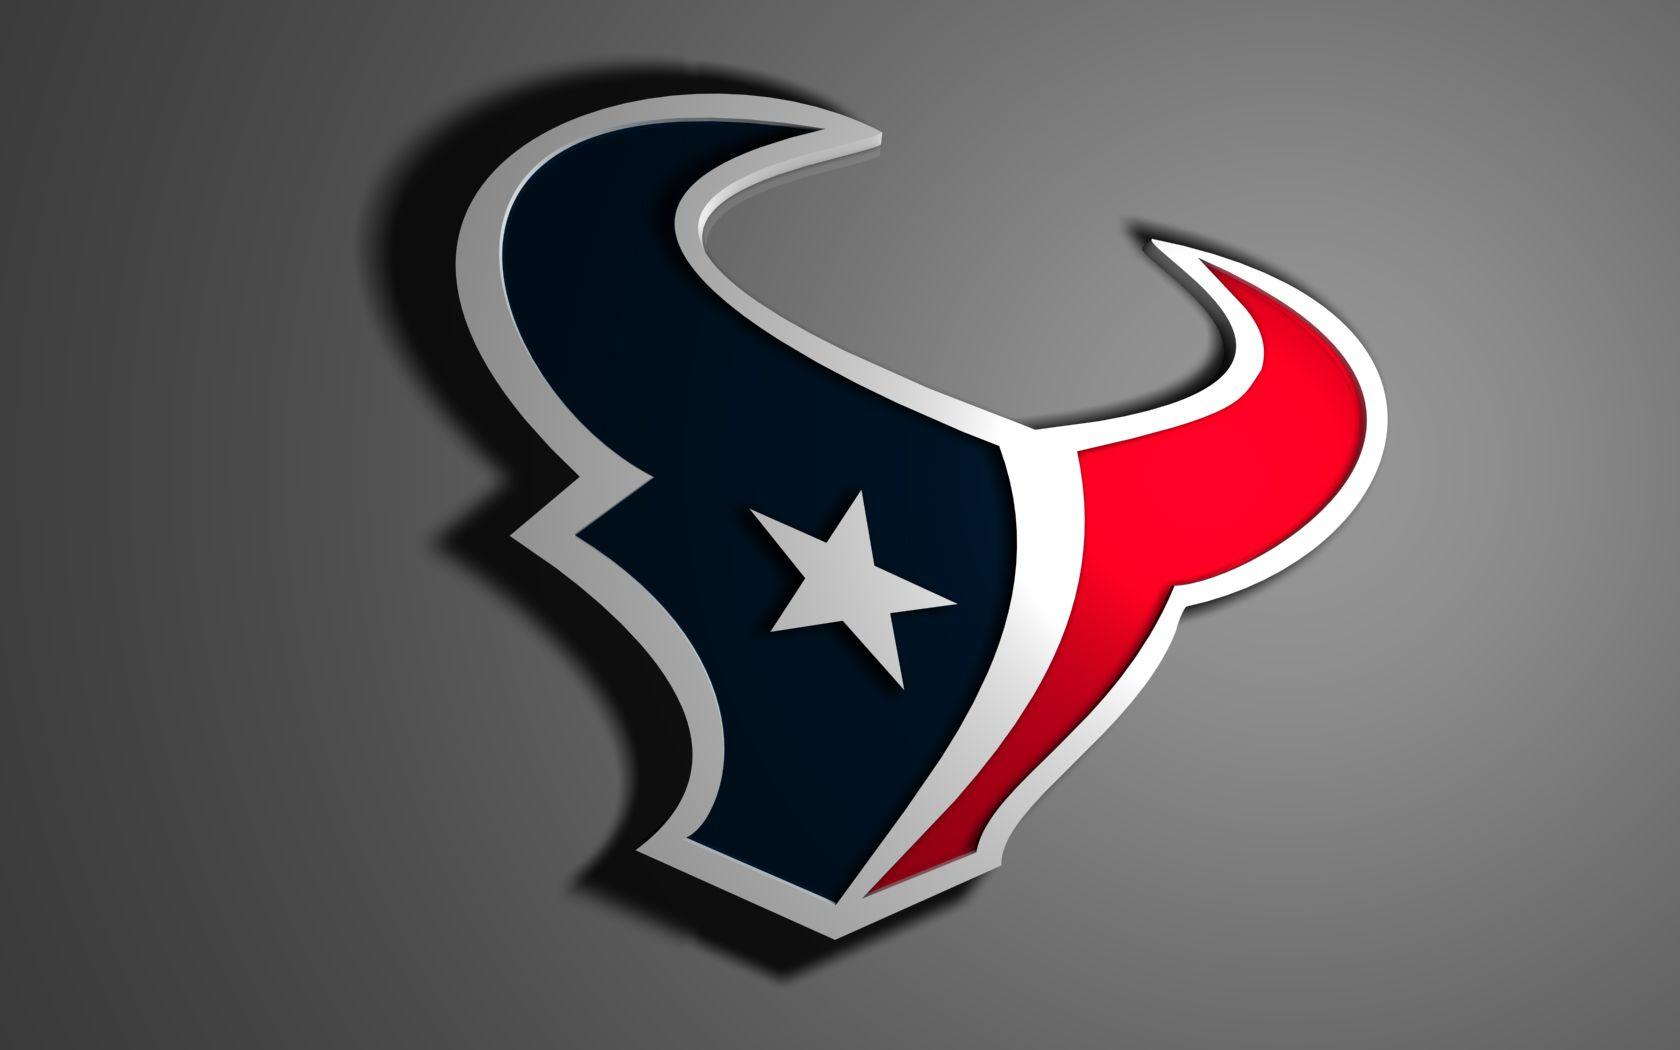 Houston Texans wallpapers hd